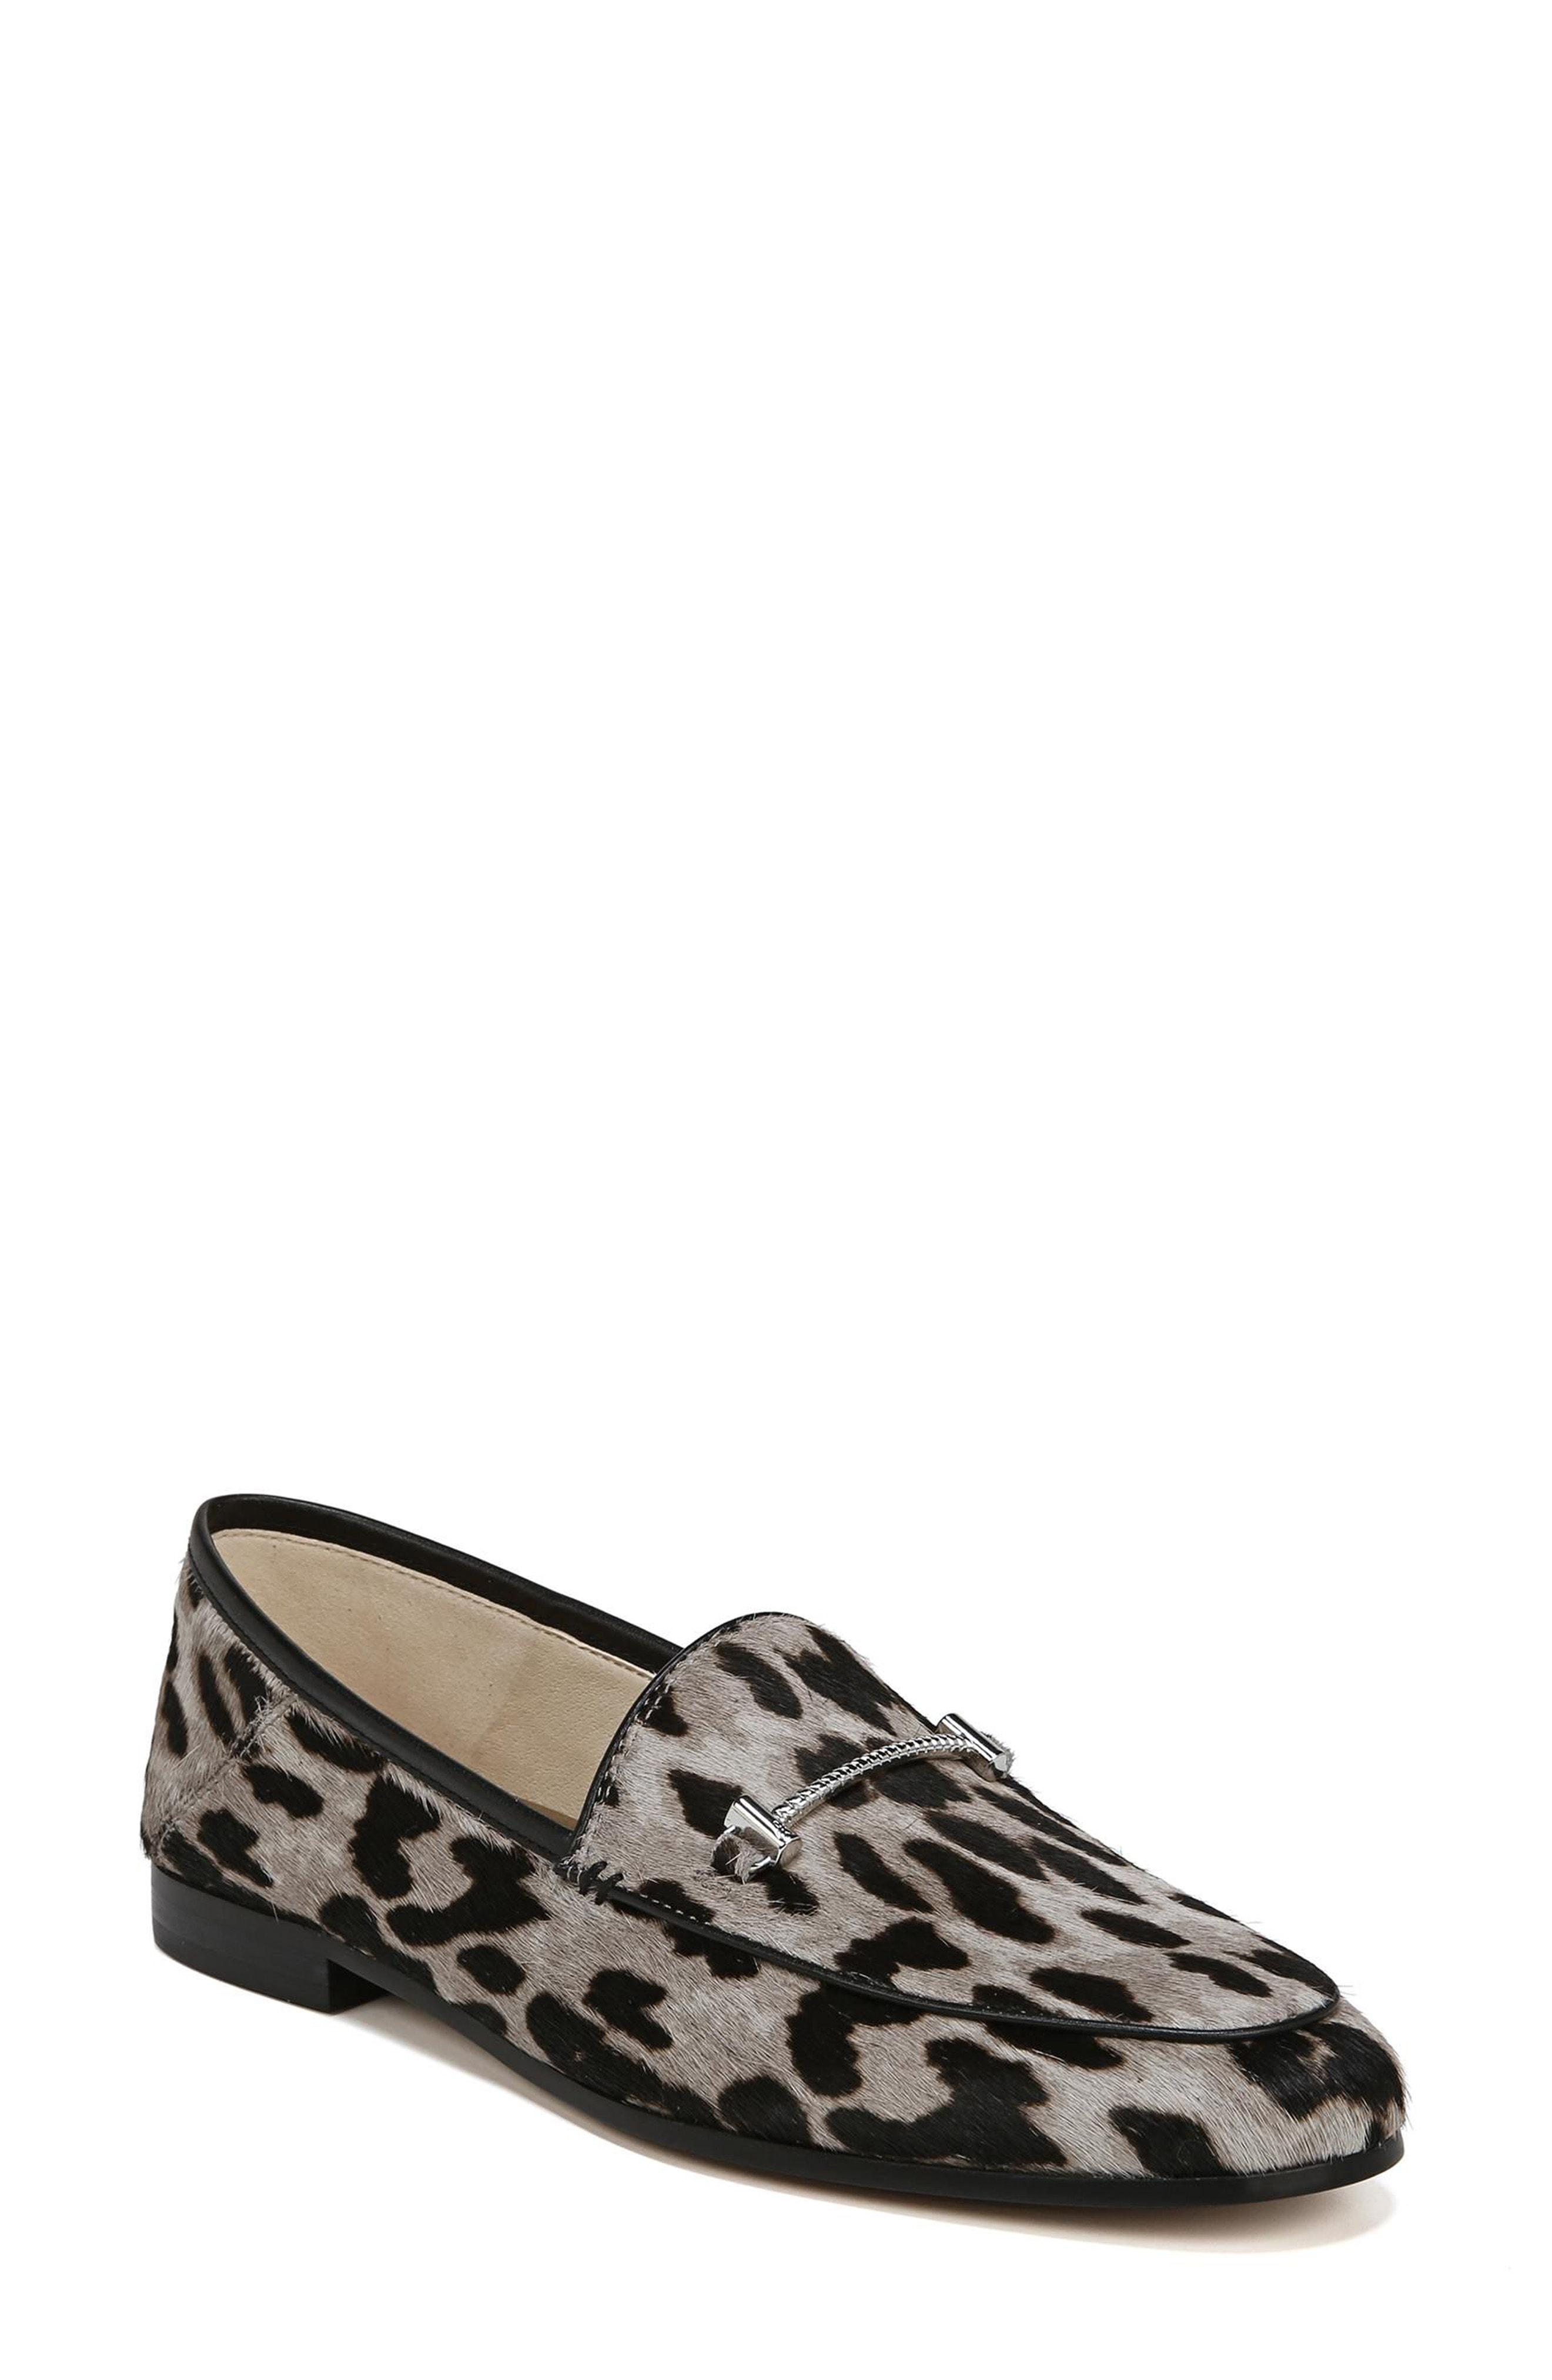 a3bbaf6aaa98d Lyst - Sam Edelman Lior Loafer in Gray